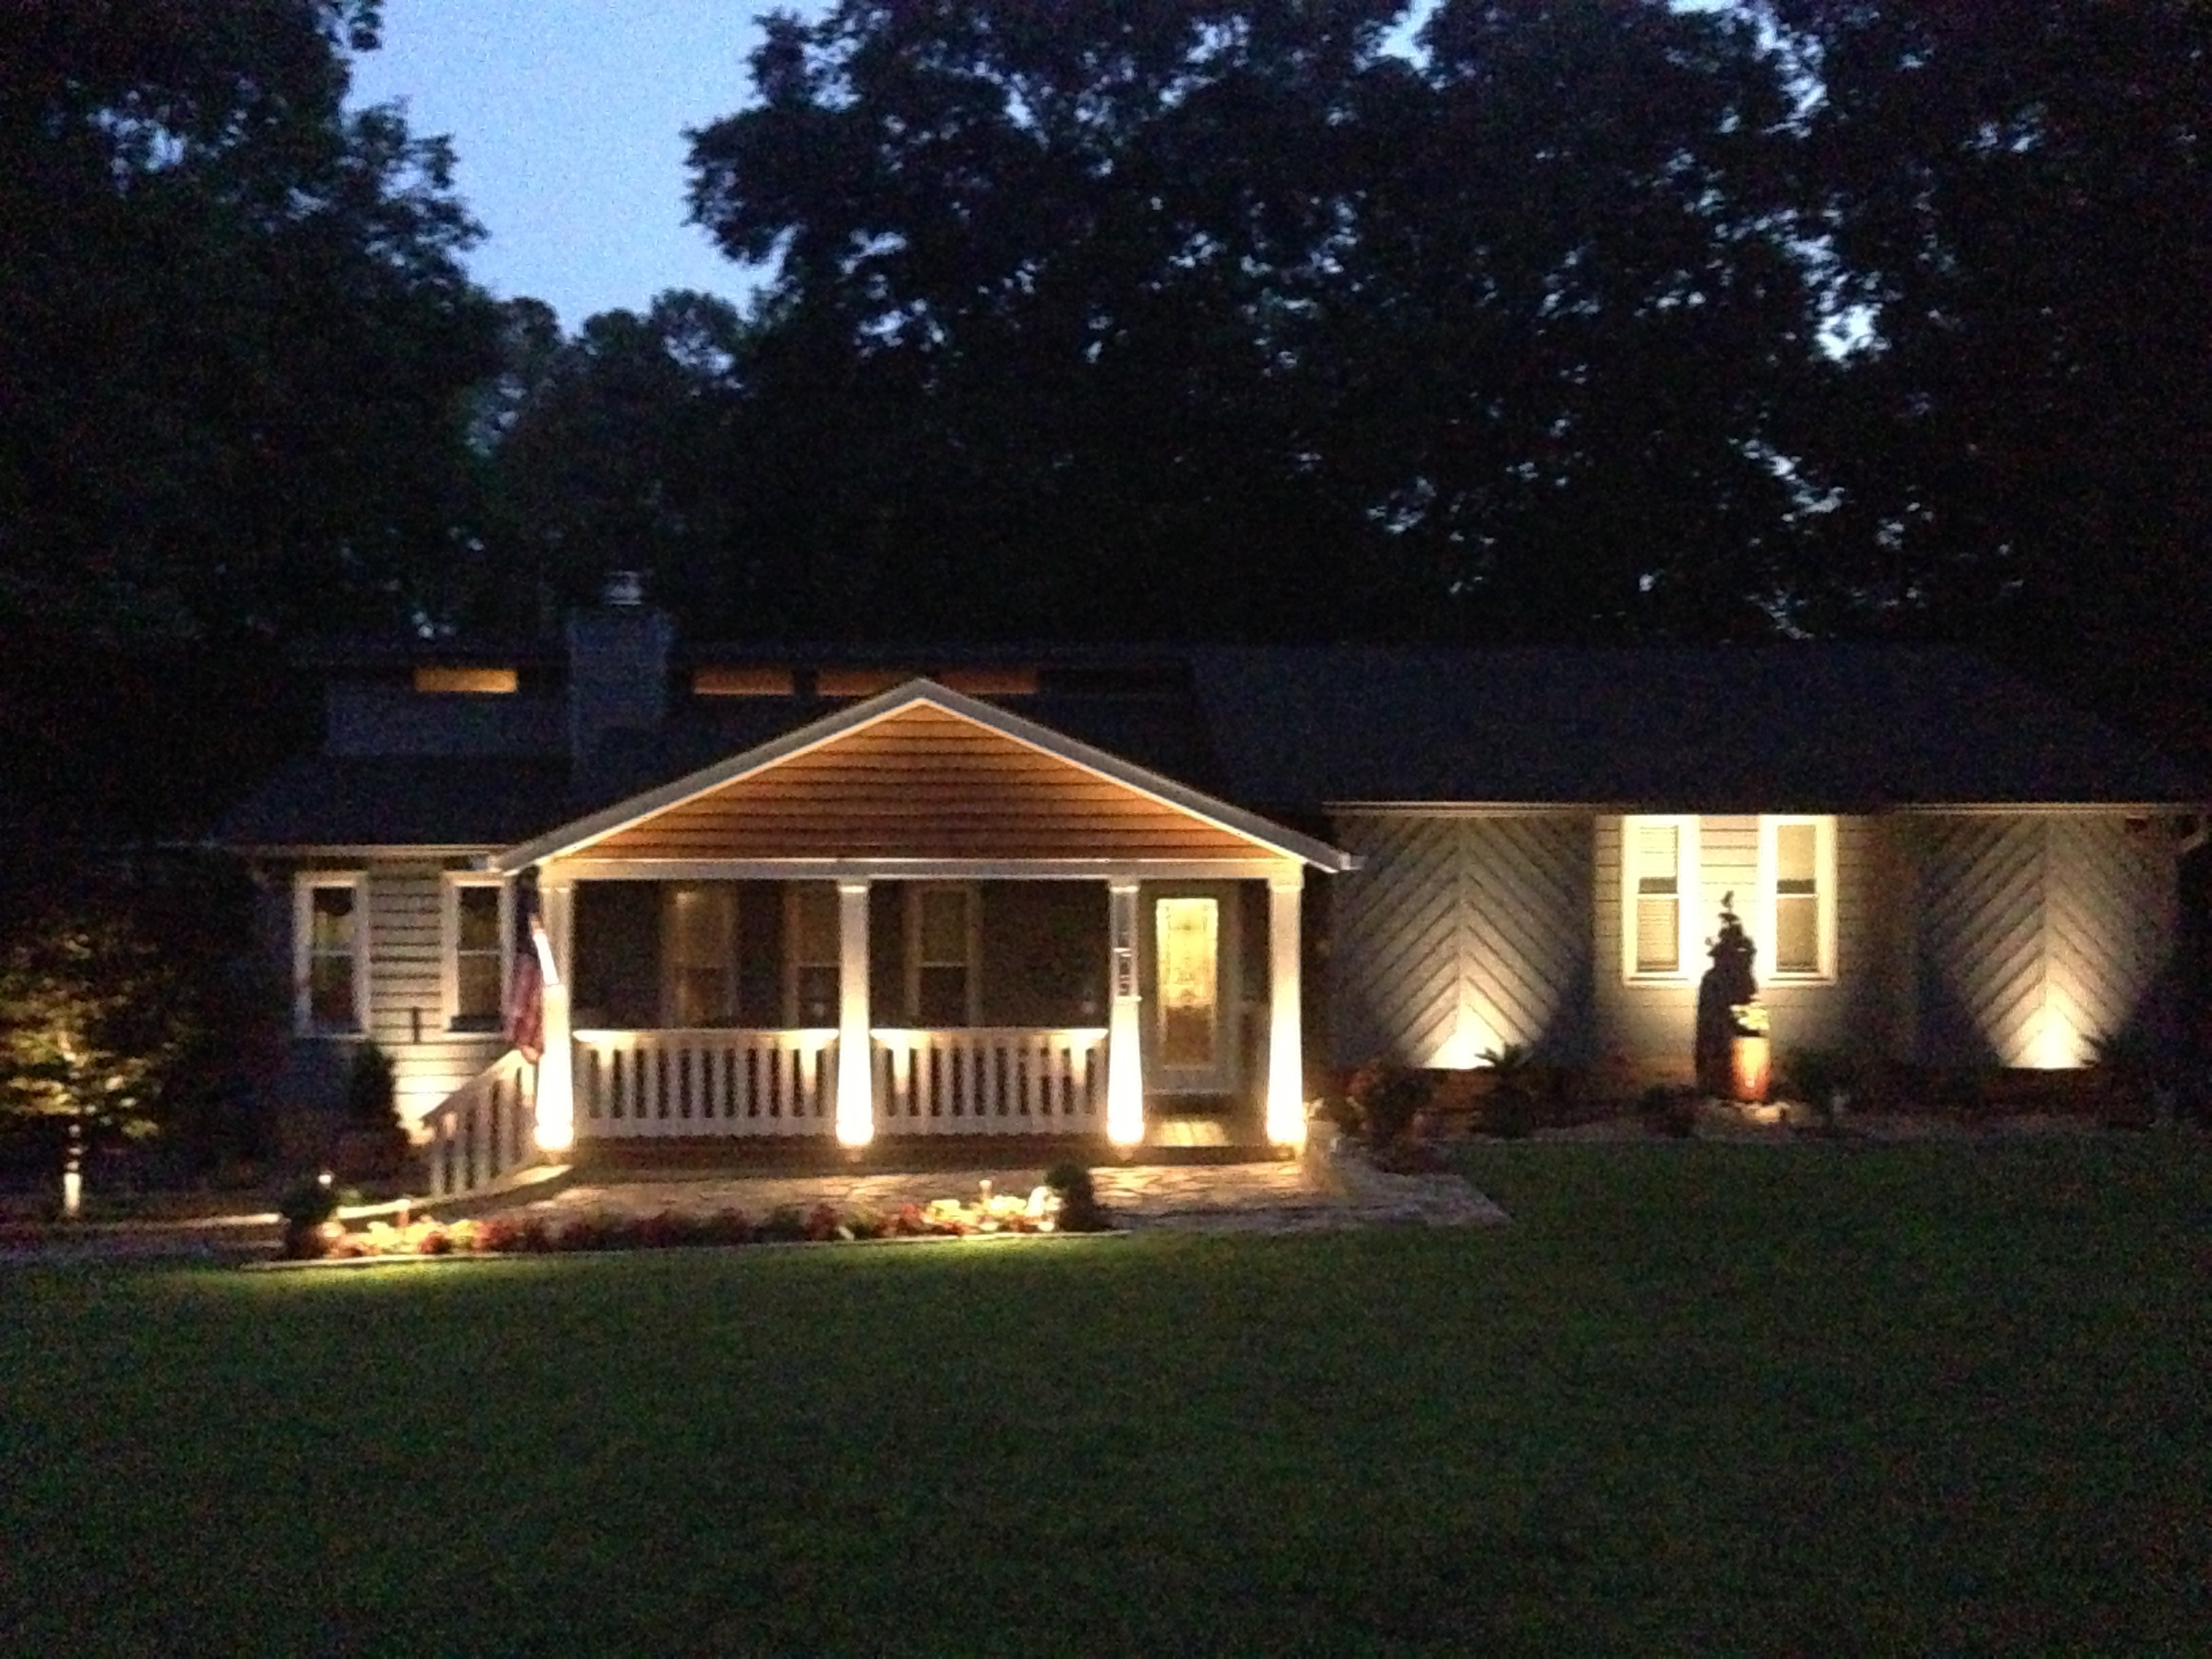 Solar Outdoor Landscape Lighting Victsing Pcs Spotlight In Led Best With Outdoor Landscape Lanterns (View 20 of 20)